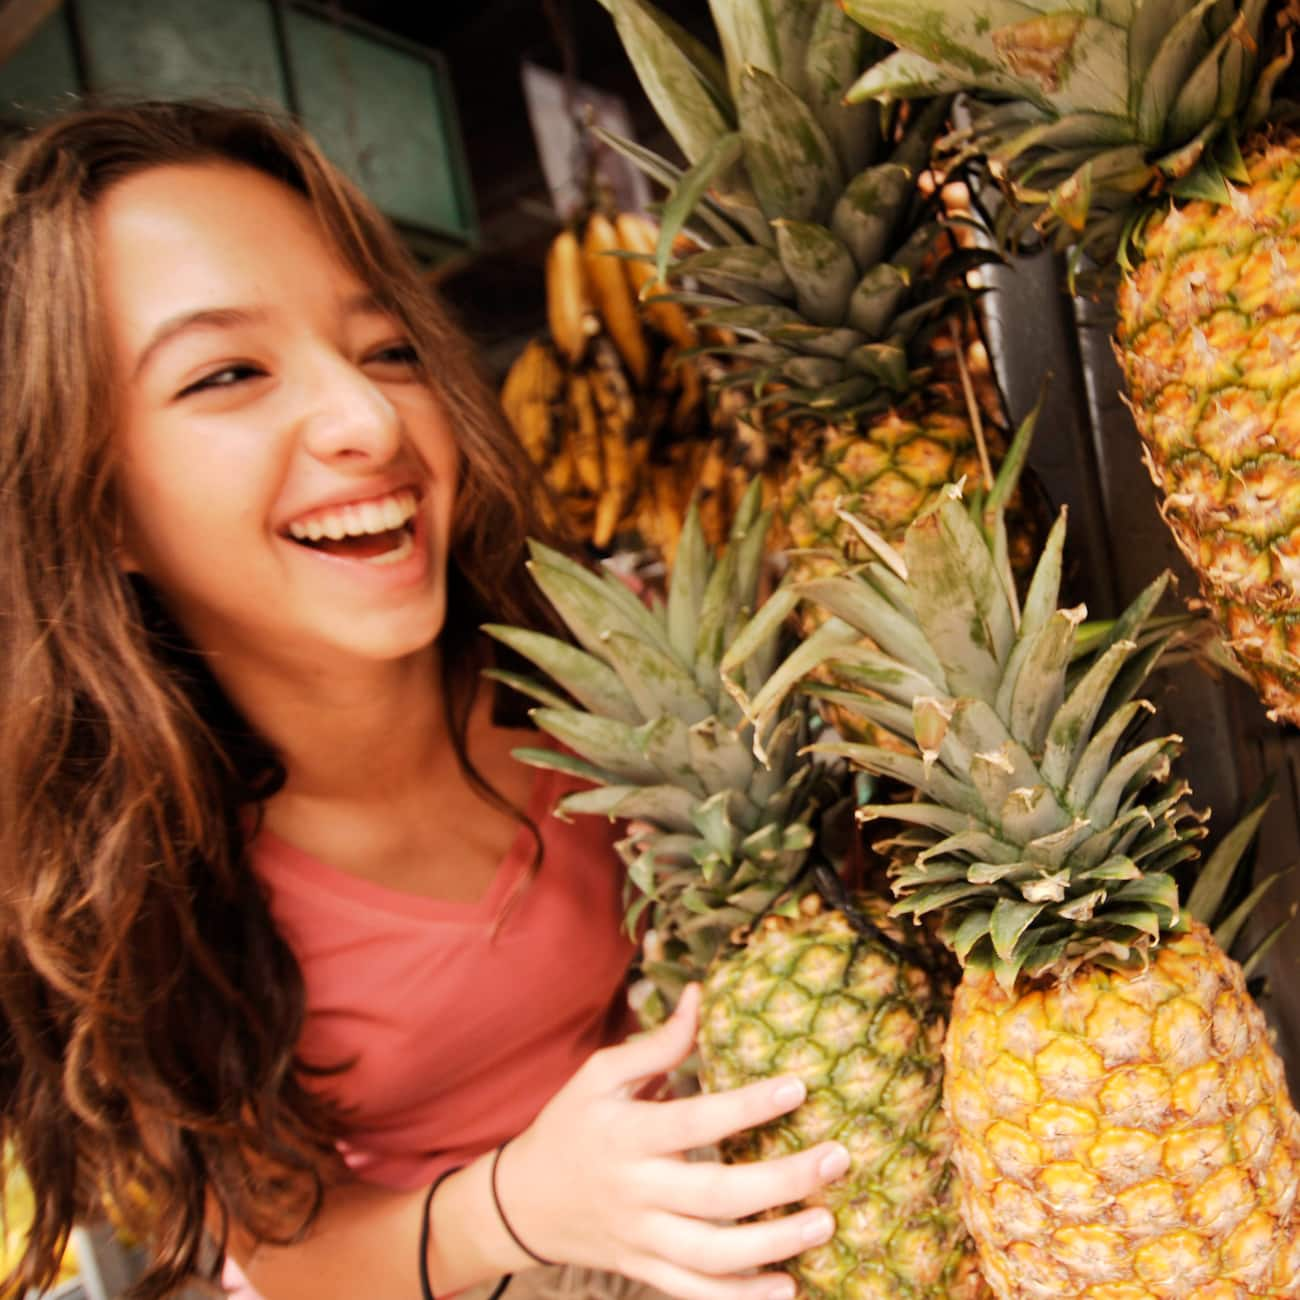 A smiling girl stands near a display of pineapples